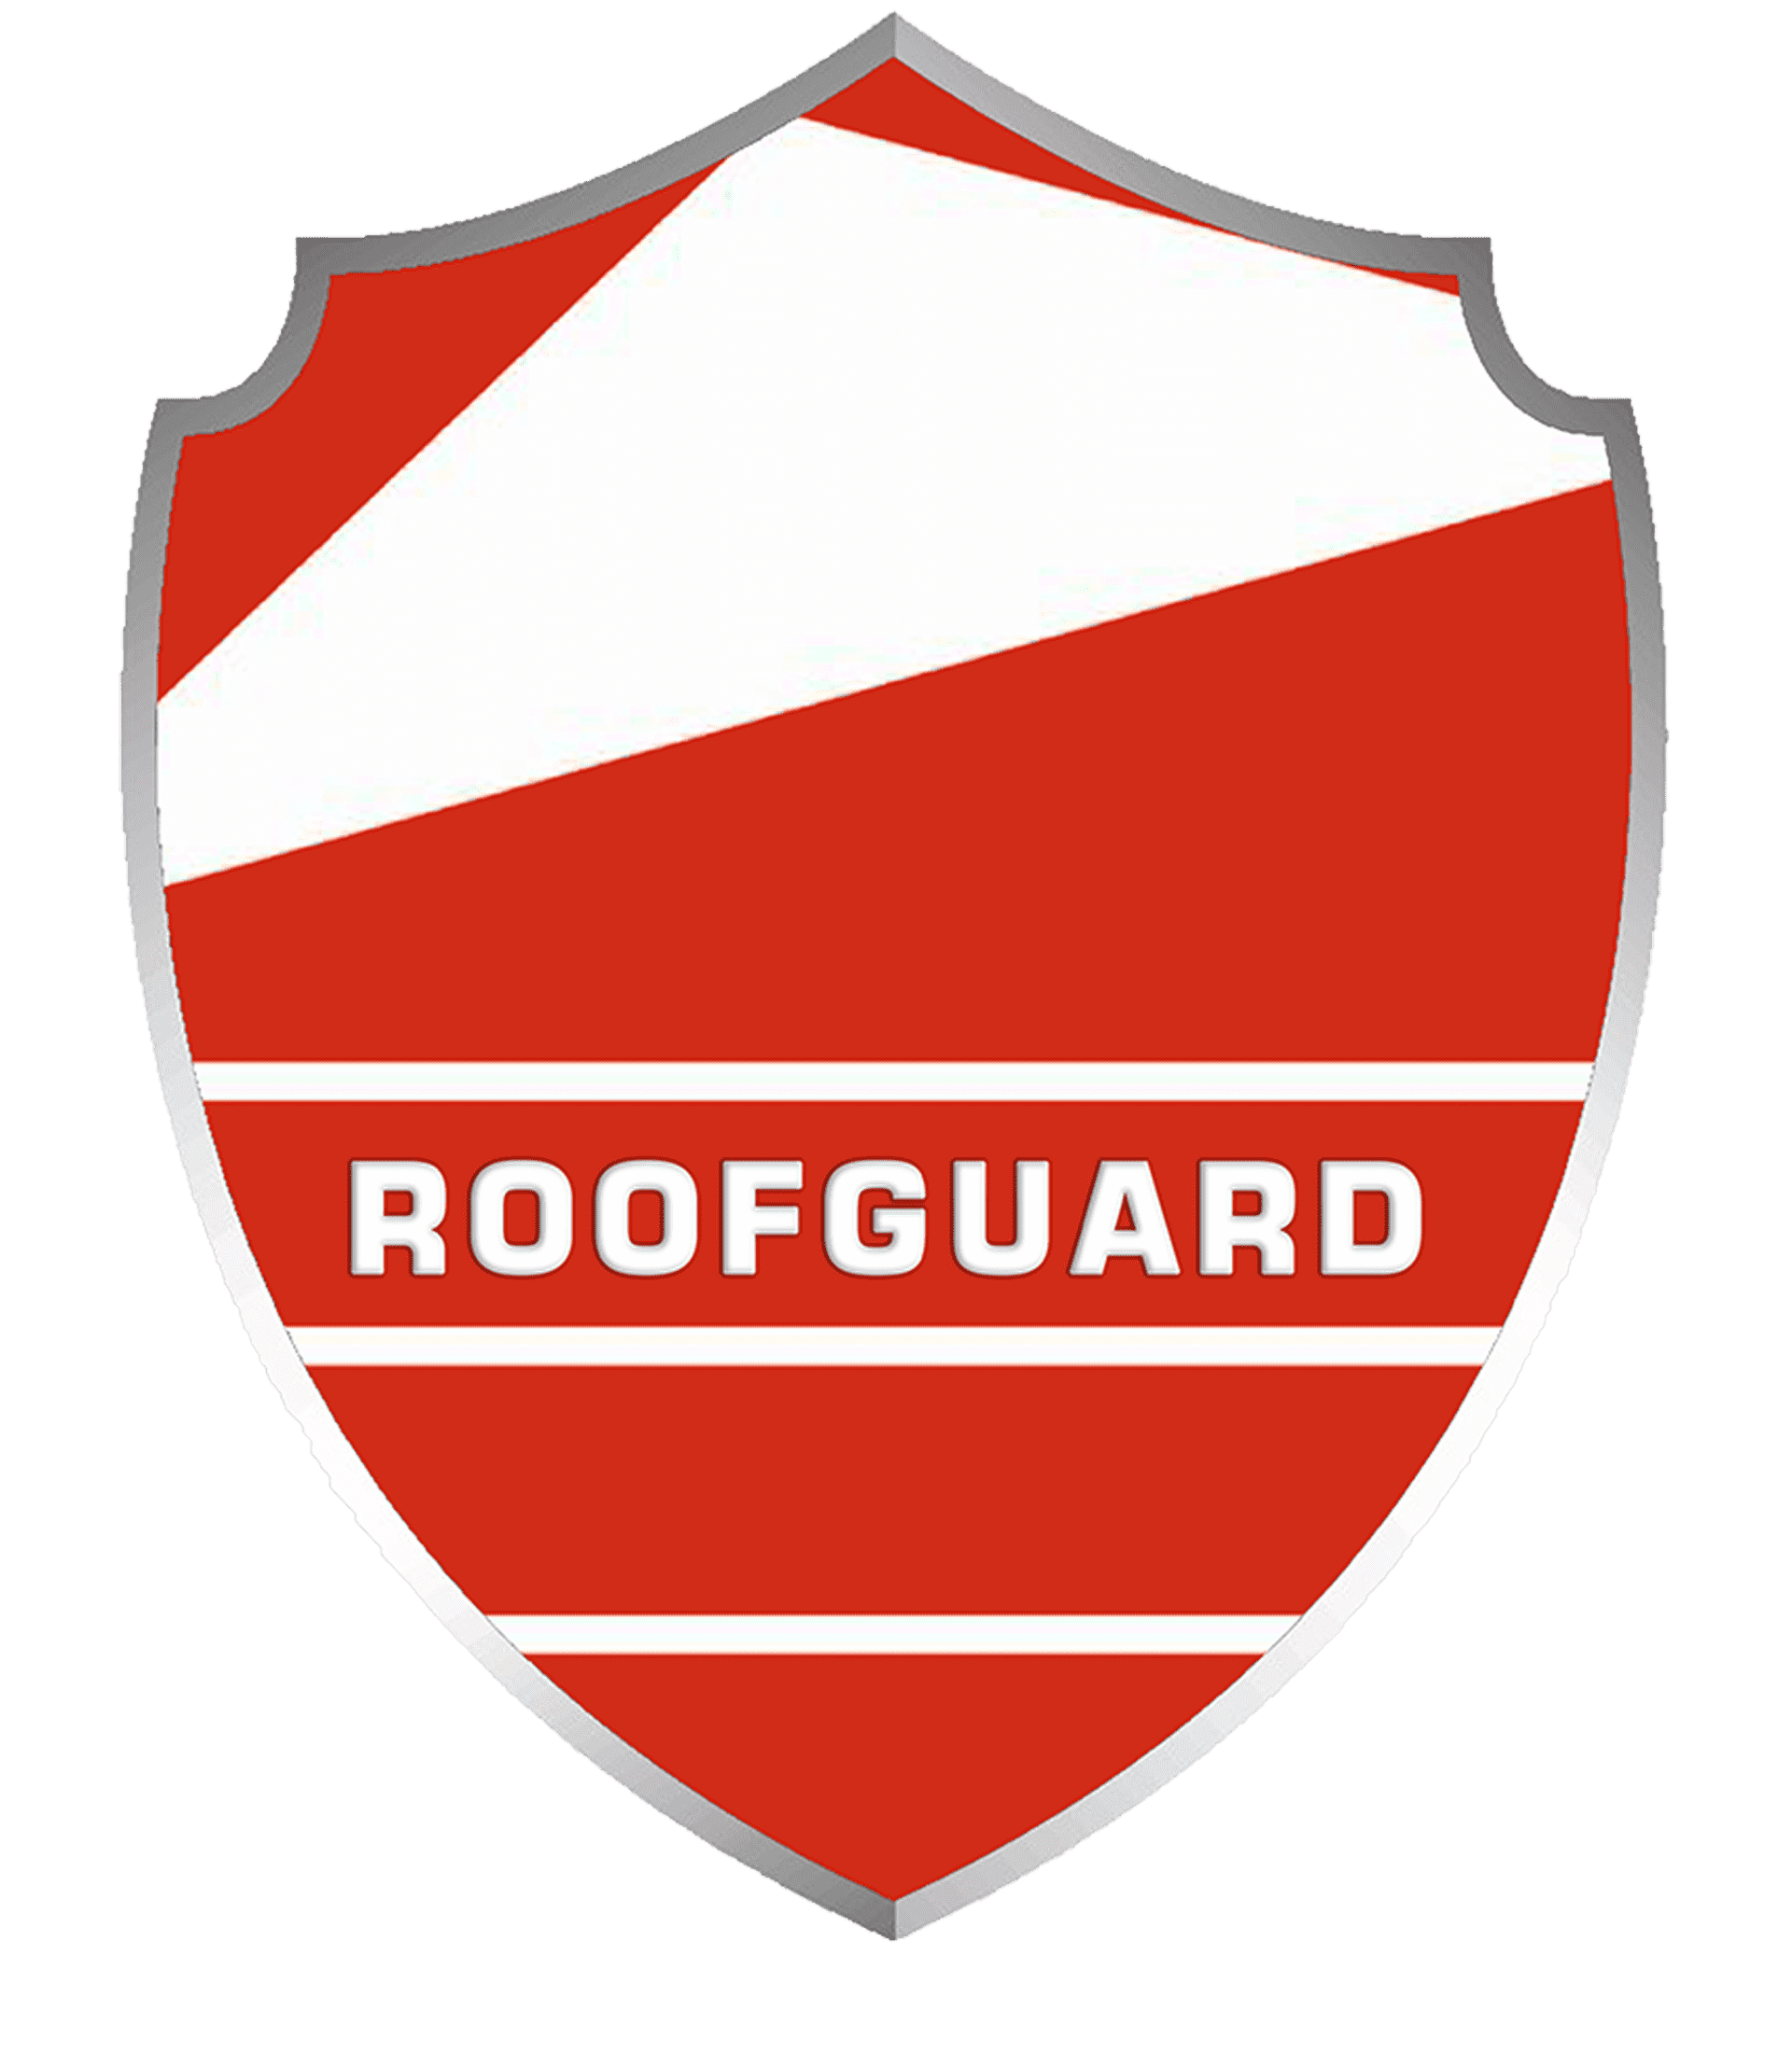 roofguard-final-trans-min.png